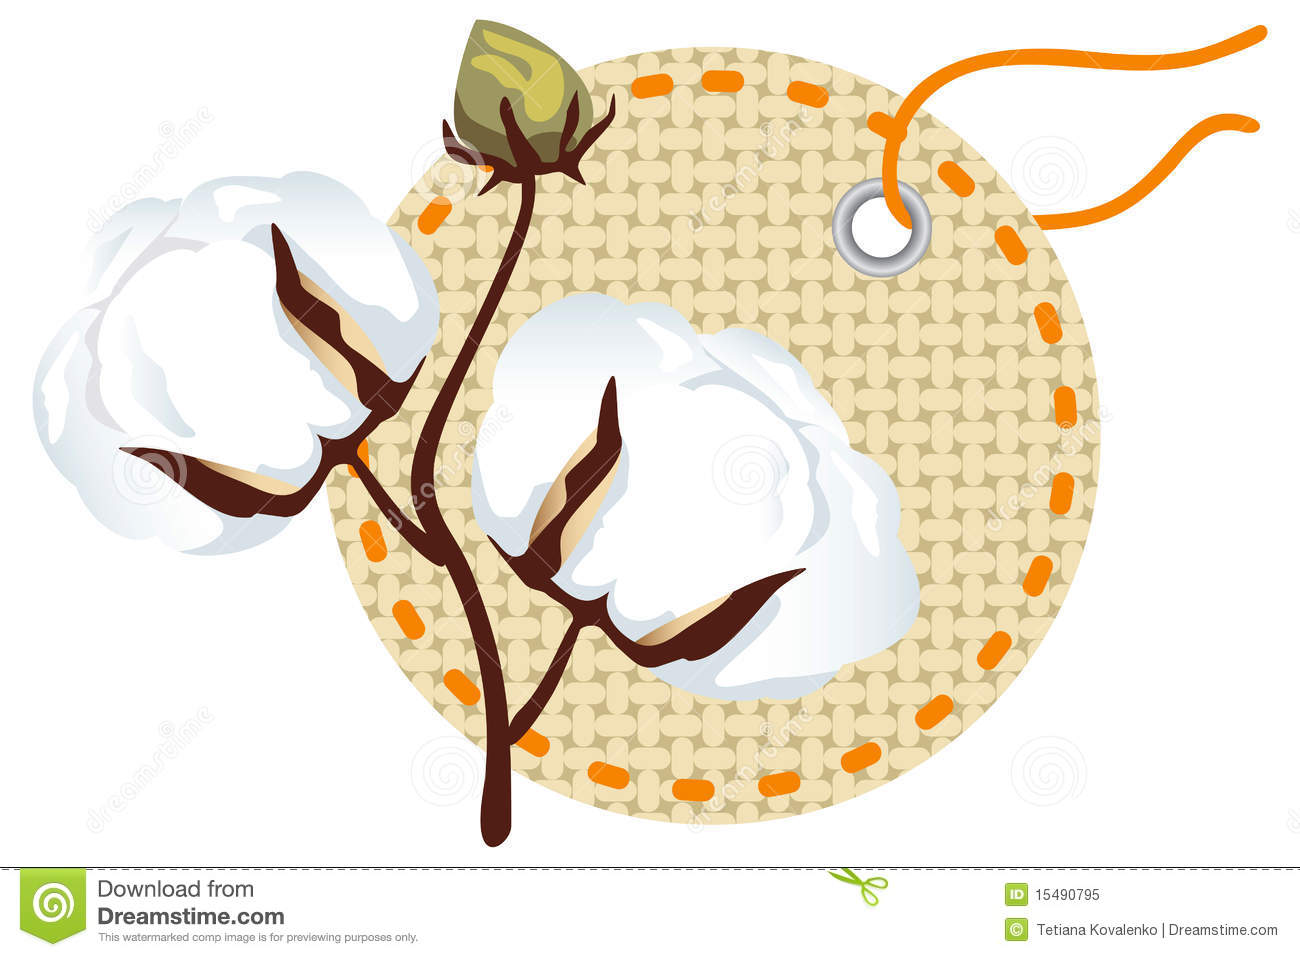 Cotton Branch With Label (Gossypium) Royalty Free Stock Photo.